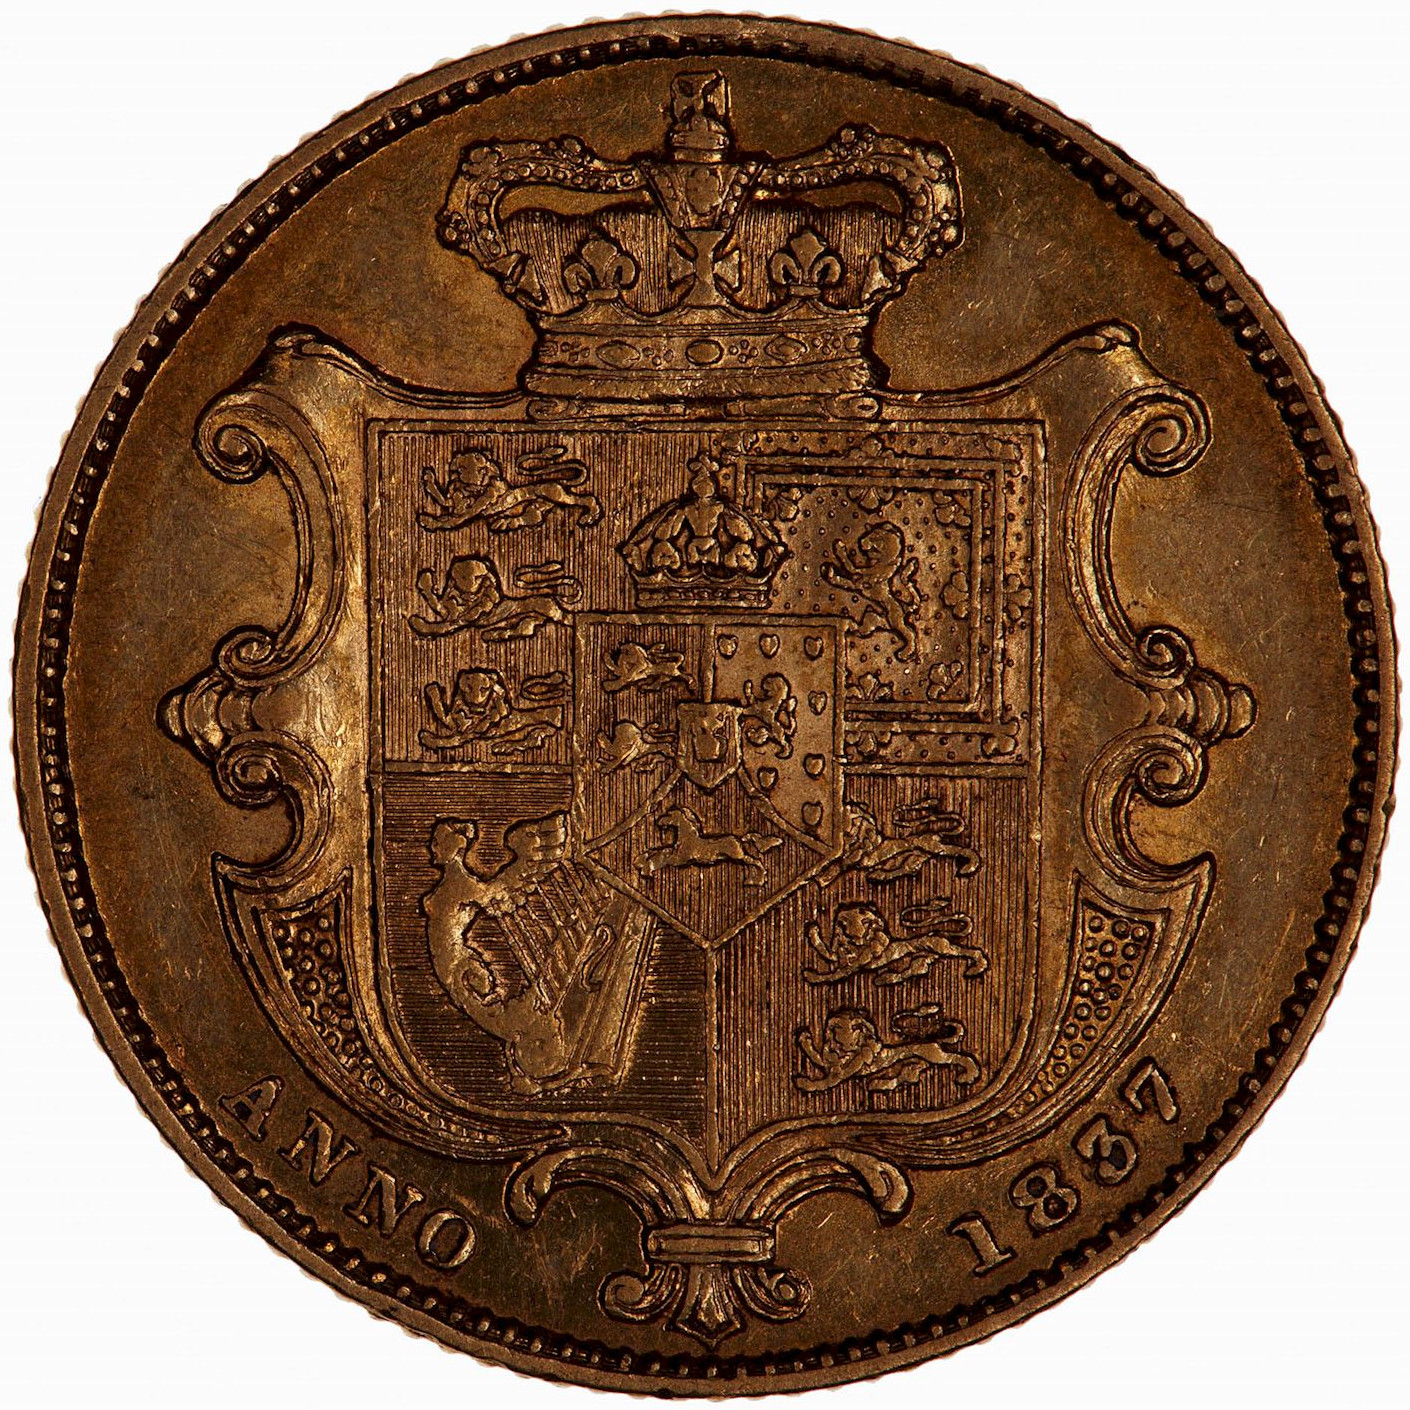 Sovereign 1837 William IV: Photo Coin - Sovereign, William IV, Great Britain, 1837